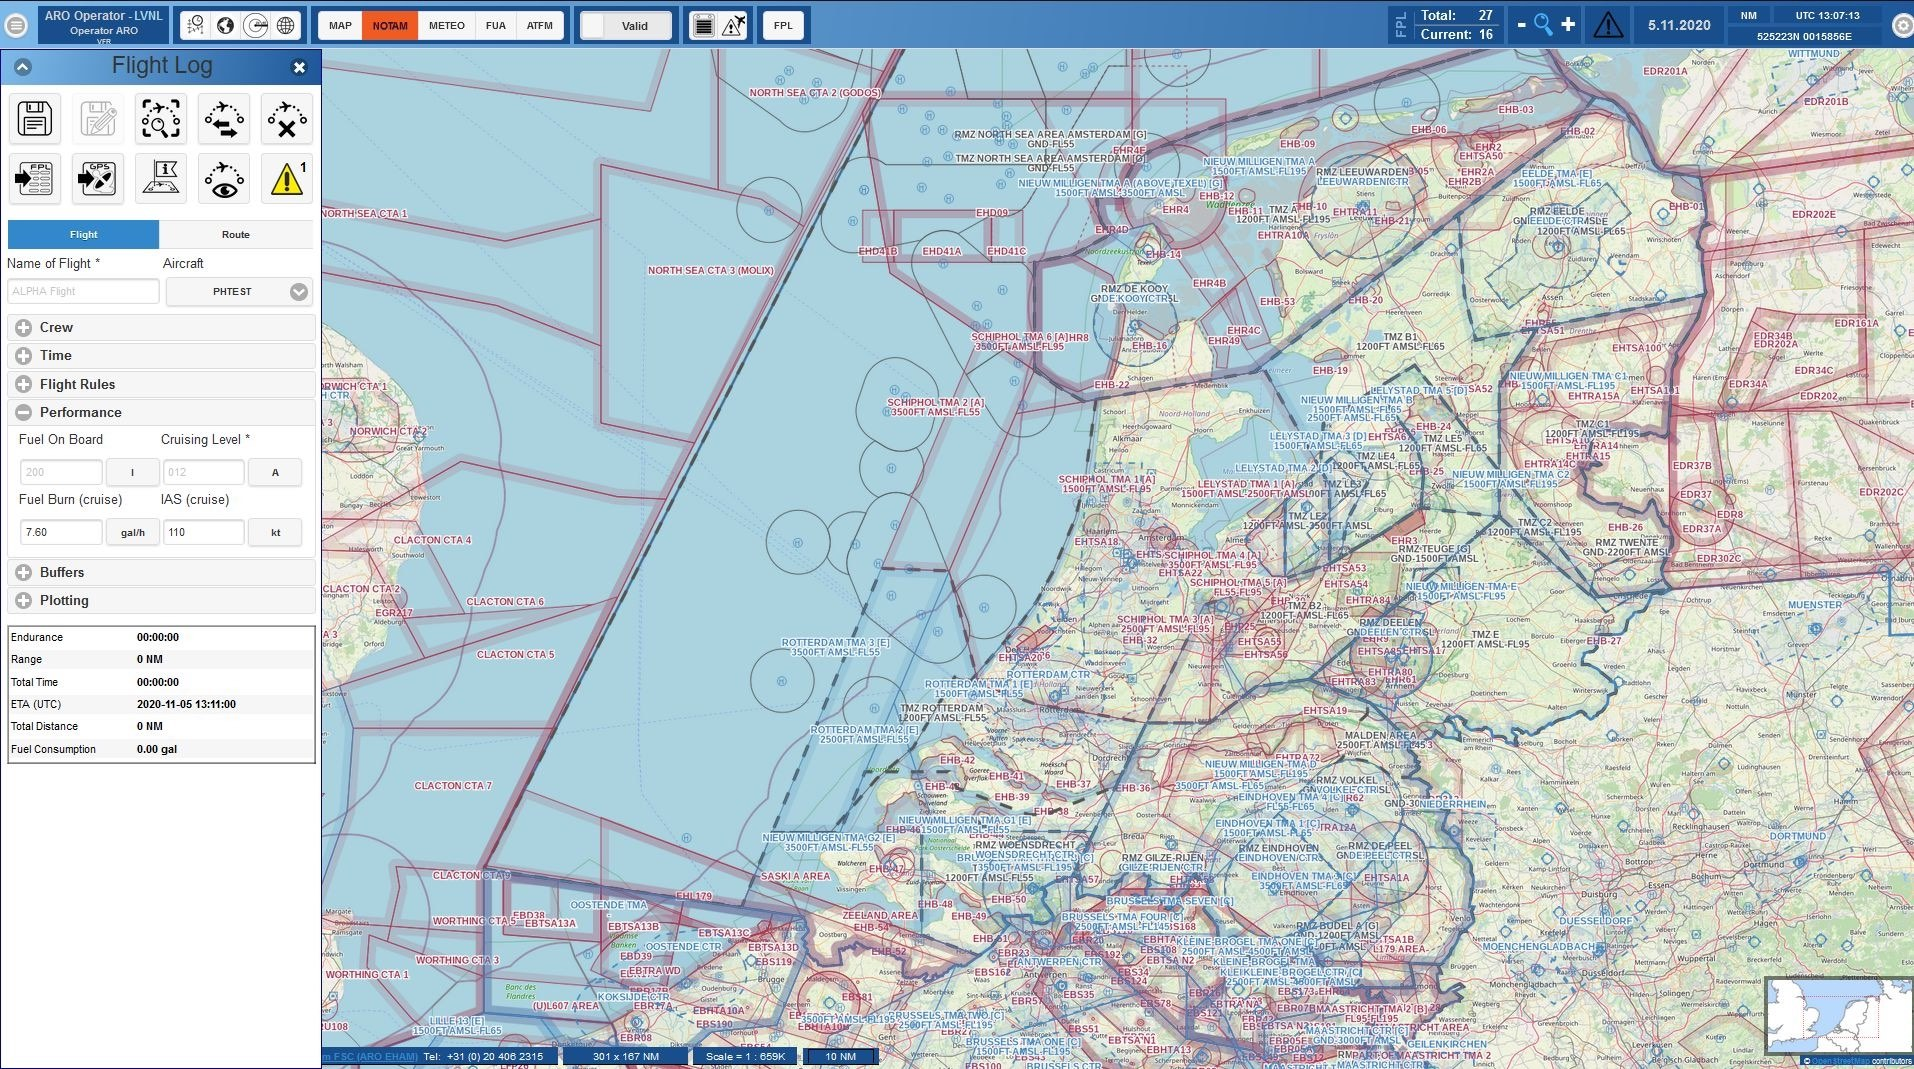 LVNL launched a new HomeBriefing for VFR/IFR pilots